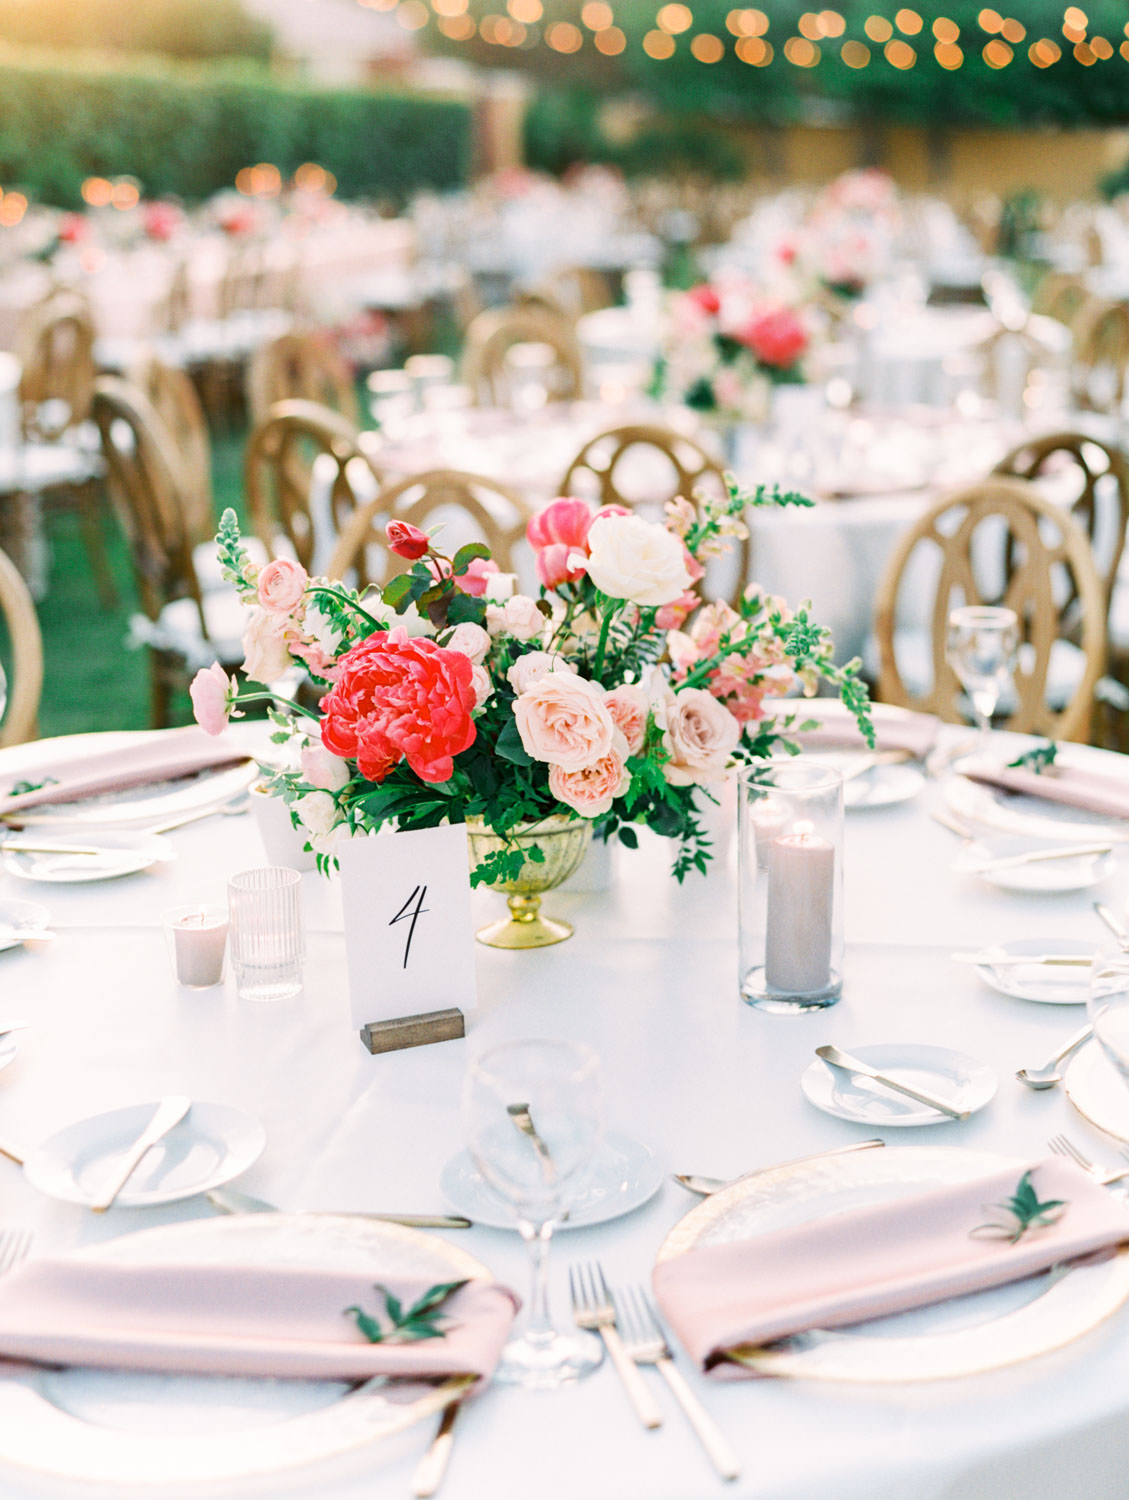 Round table with ivory linen and blush napkins on clear gold rimmed chargers. Pink and ivory bold centerpieces with peonies, sweet peas, ivy, and roses. Miramonte Resort reception on the Mesquite Lawn. Film photography by Cavin Elizabeth.